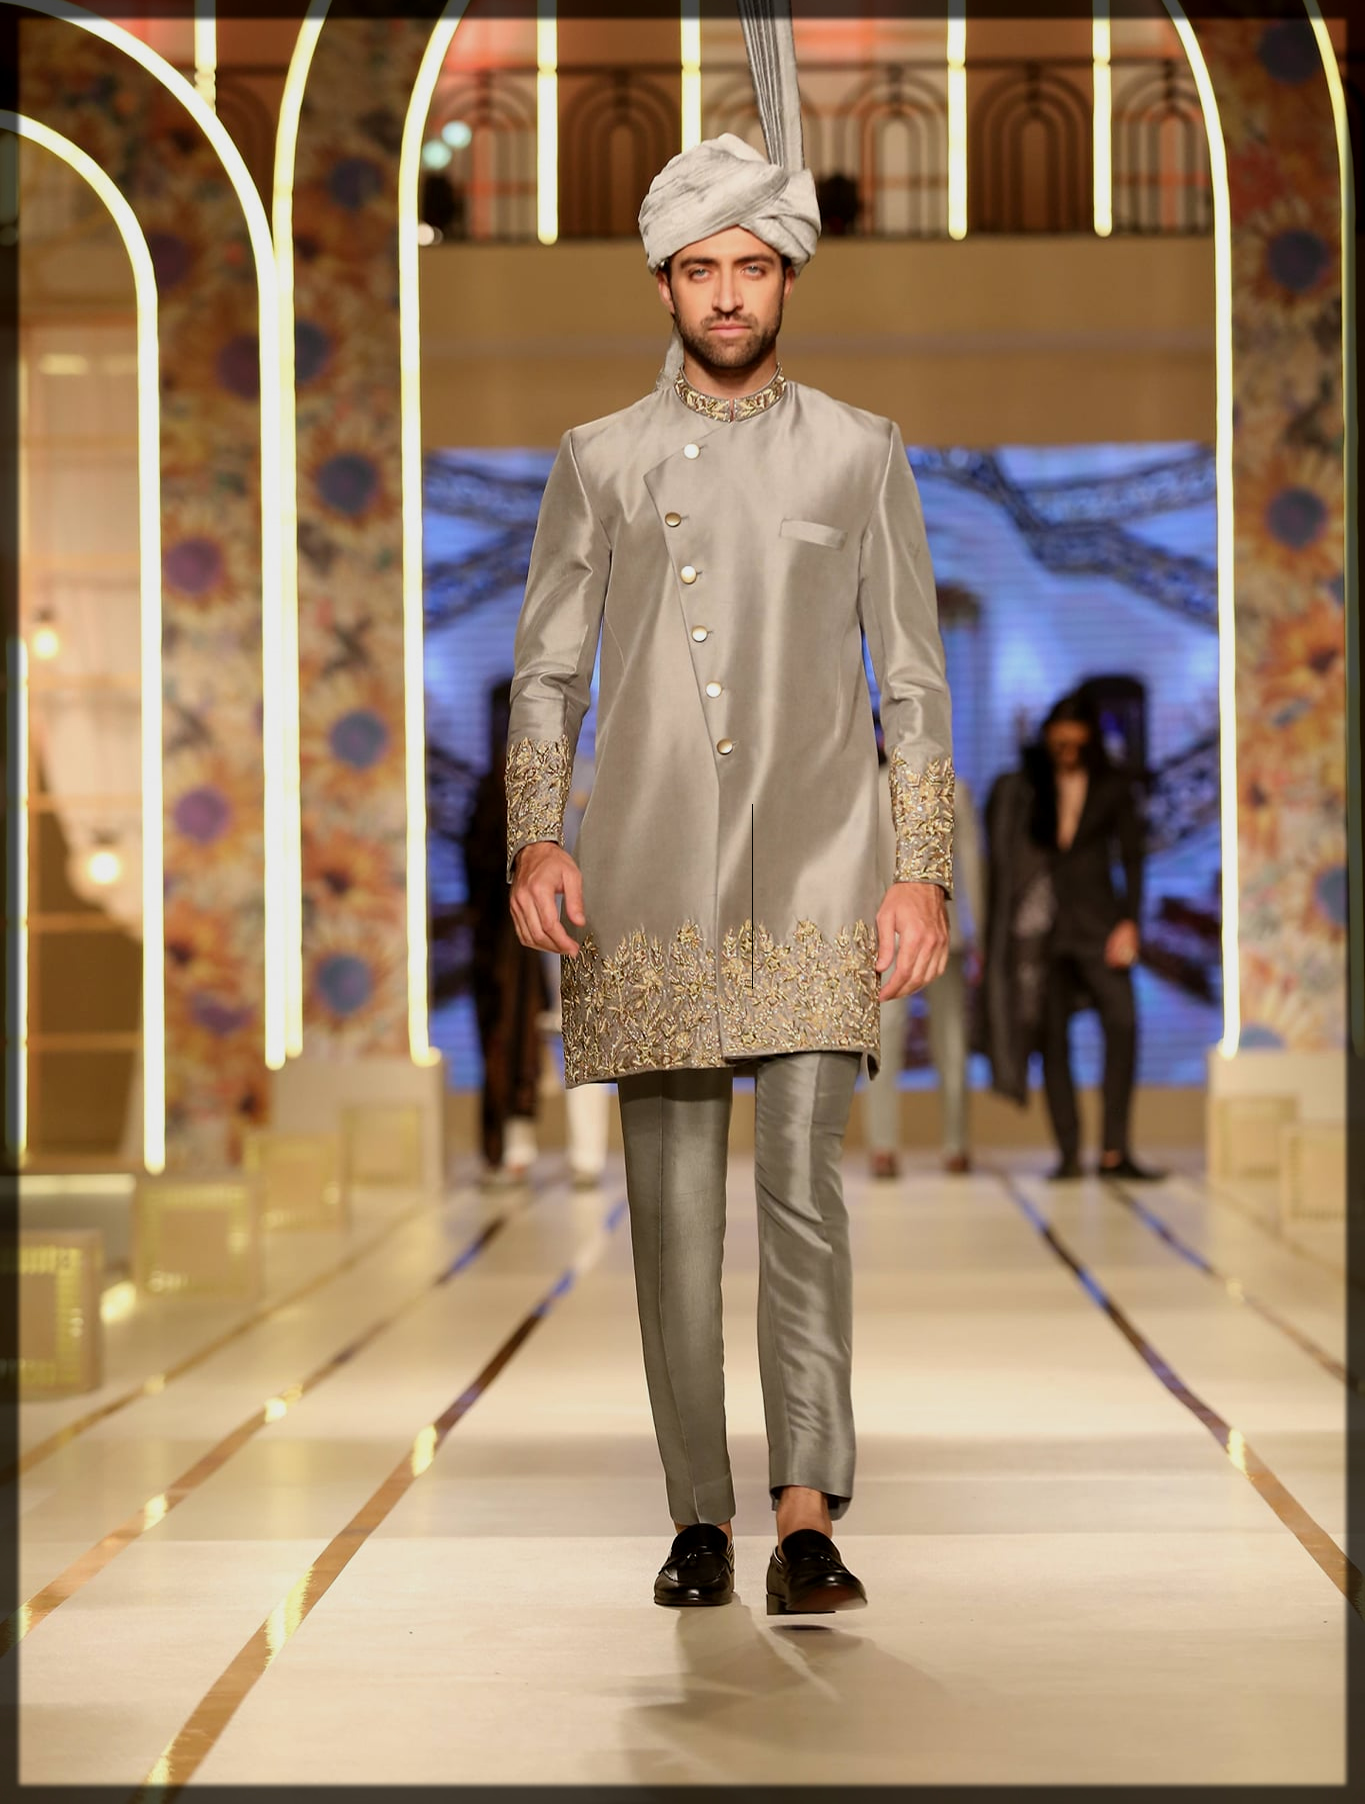 appealing groom collection